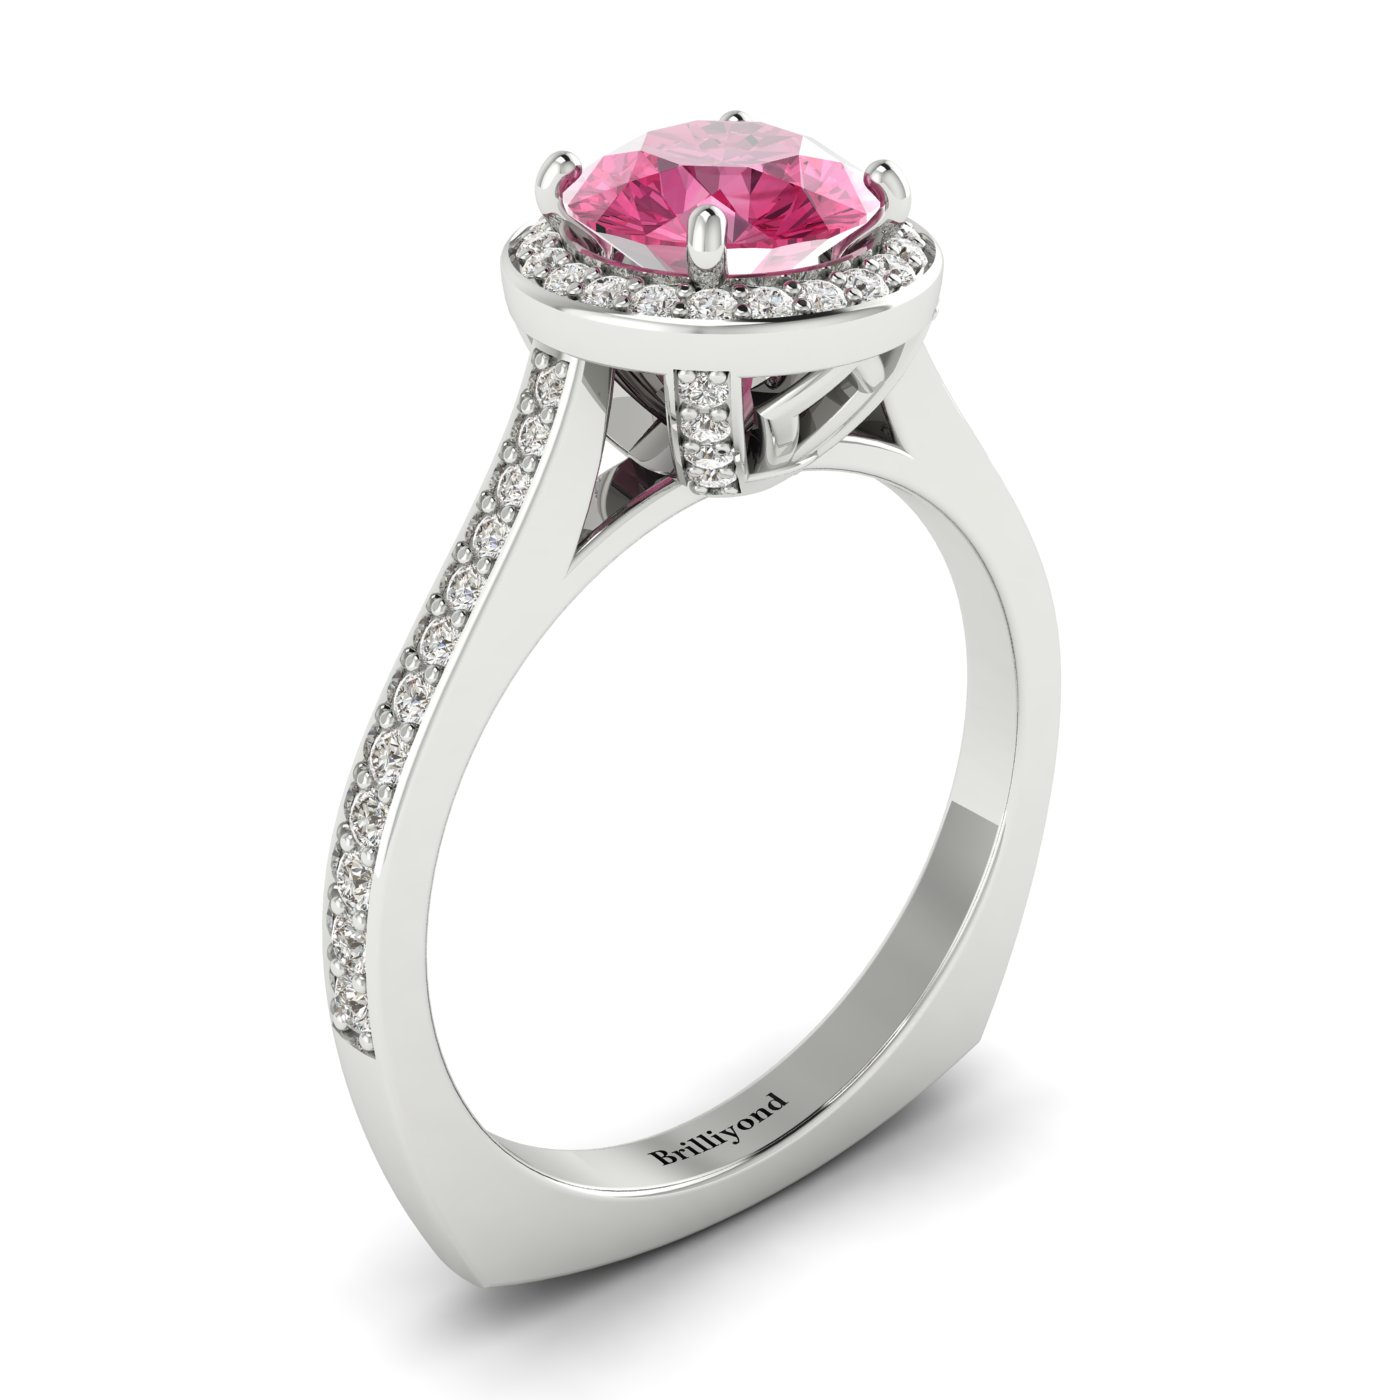 6.5mm Natural Pink Ceylon Sapphire on 18k White Gold Band